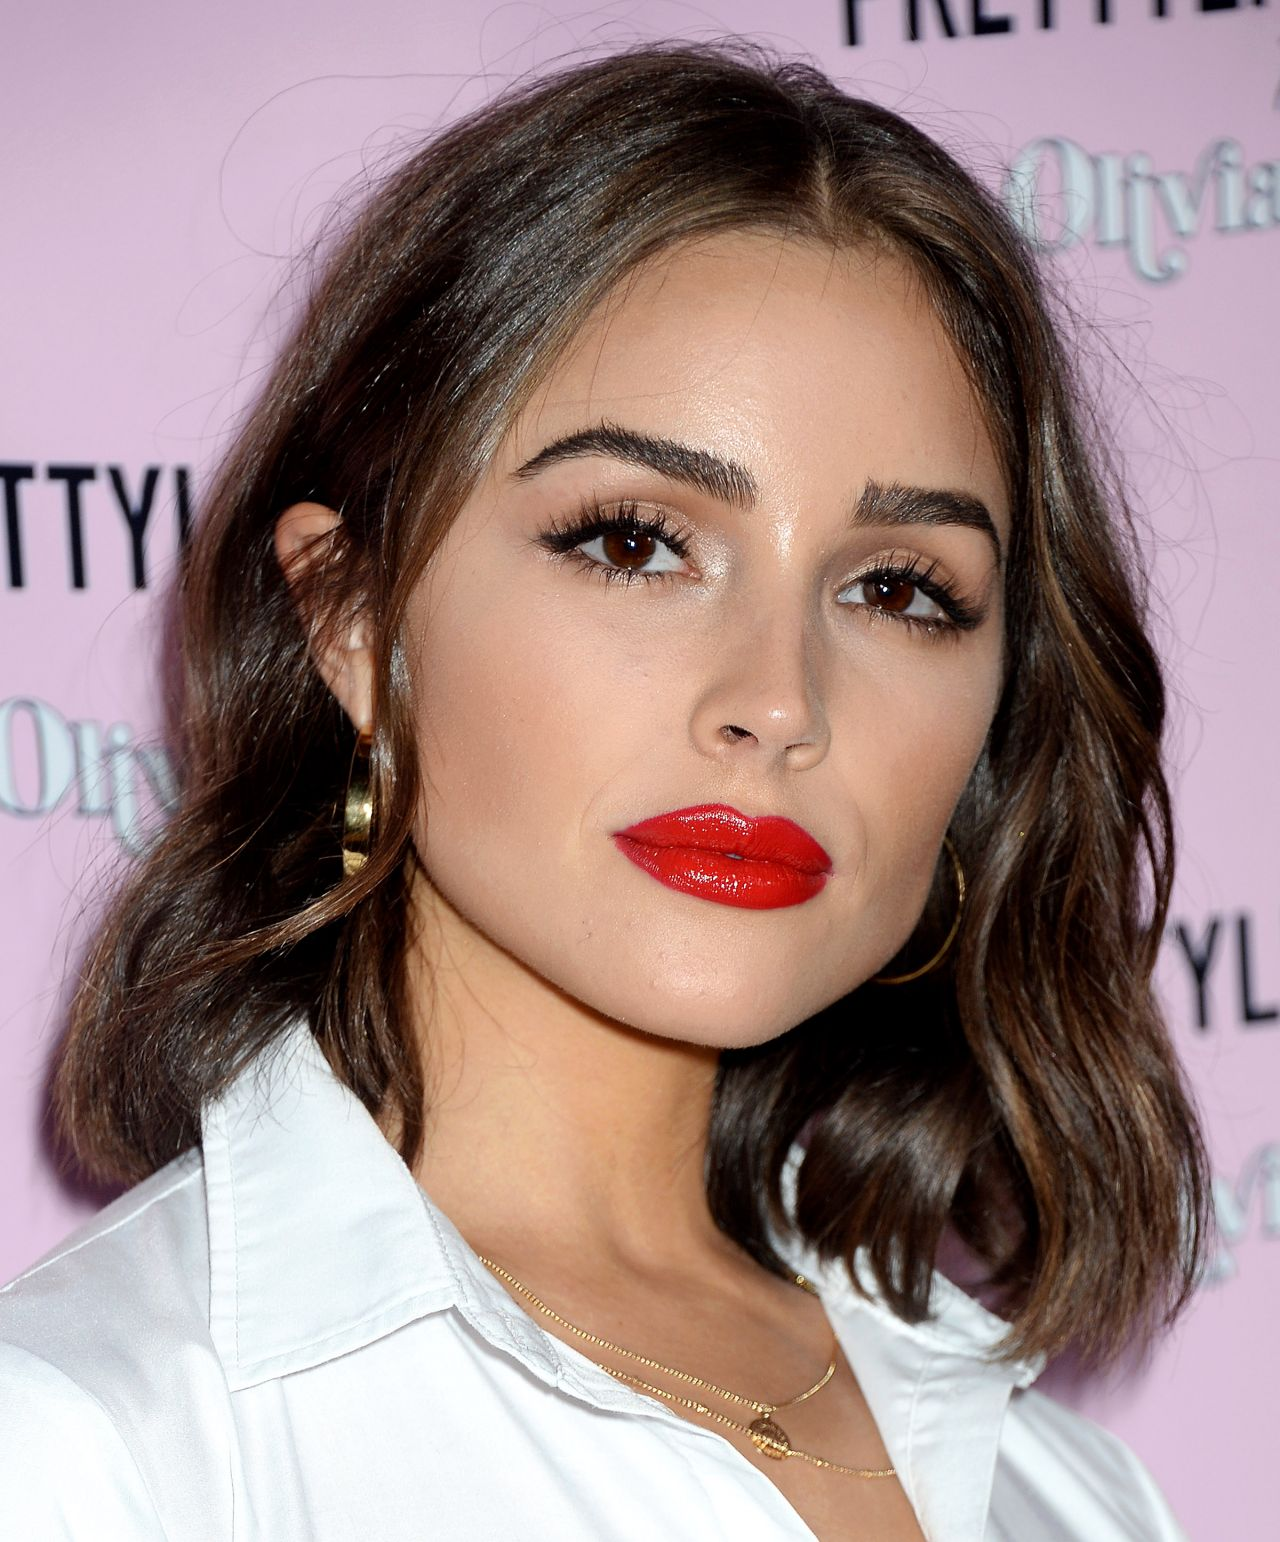 Olivia Culpo Latest Photos Celebmafia